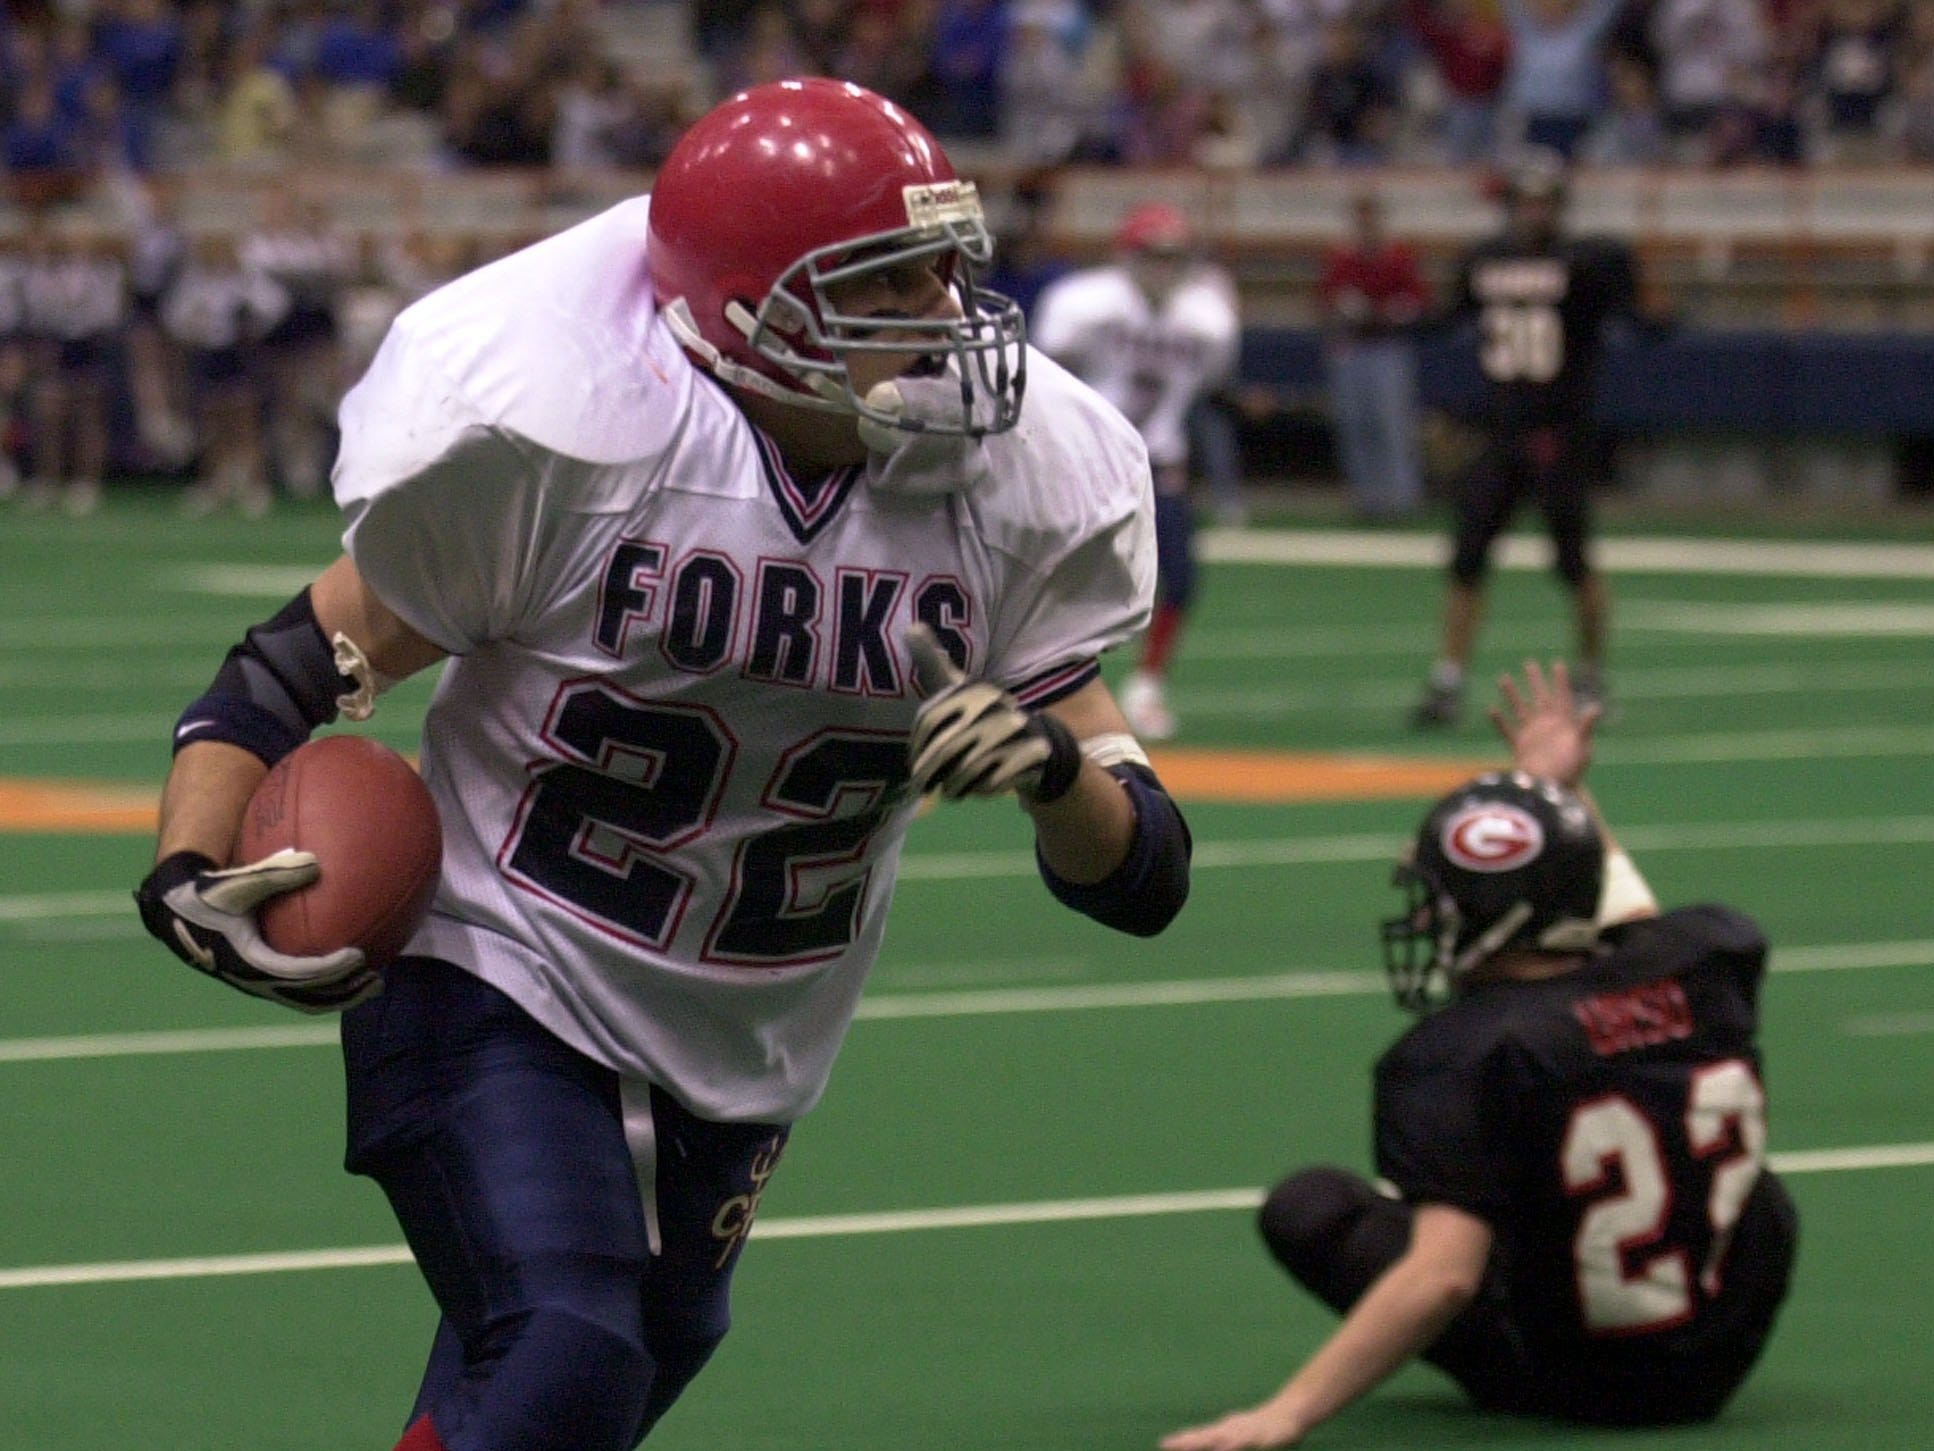 Chenango Forks Matt Stephens leaves Rye's Eddie Urso in his wake as he returns an interception for some yards during the Class B state championship game between Rye High School and Chenango Forks High School, Nov. 29, 2003 at the Carrier Dome in Syracuse, N.Y.